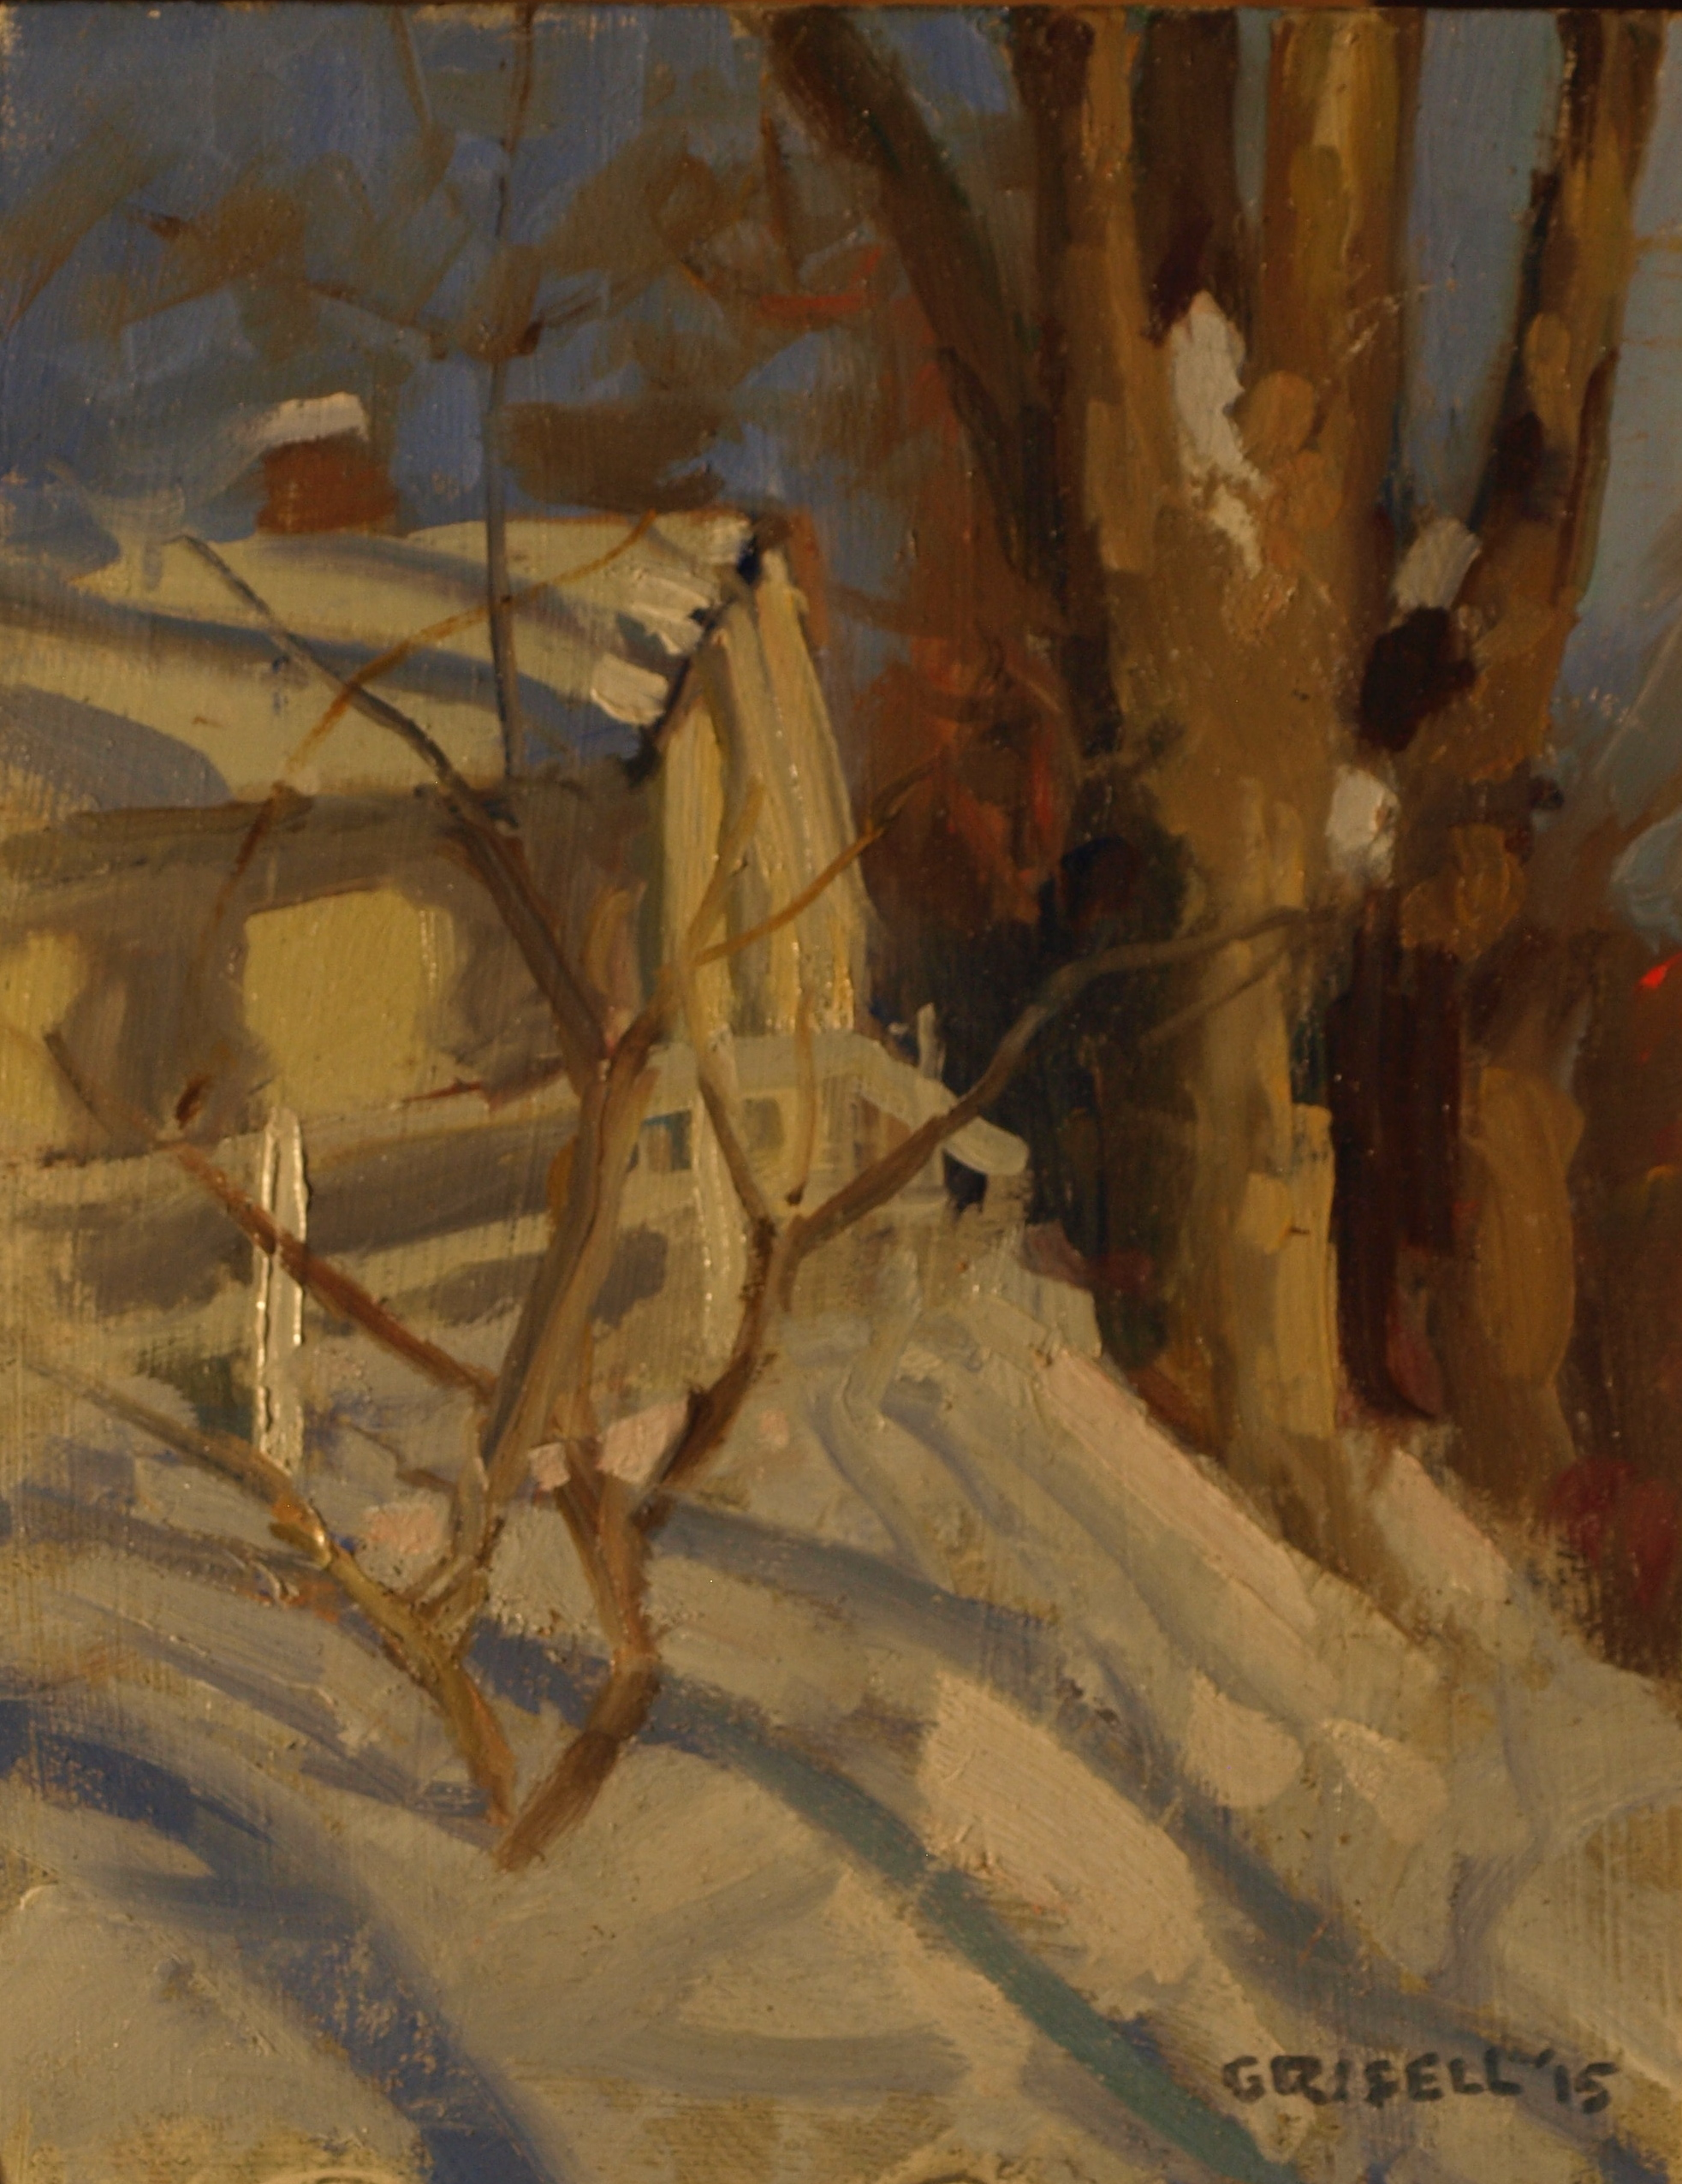 Shadows, Oil on Panel, 10 x 8 Inches, by Susan Grisell, $200